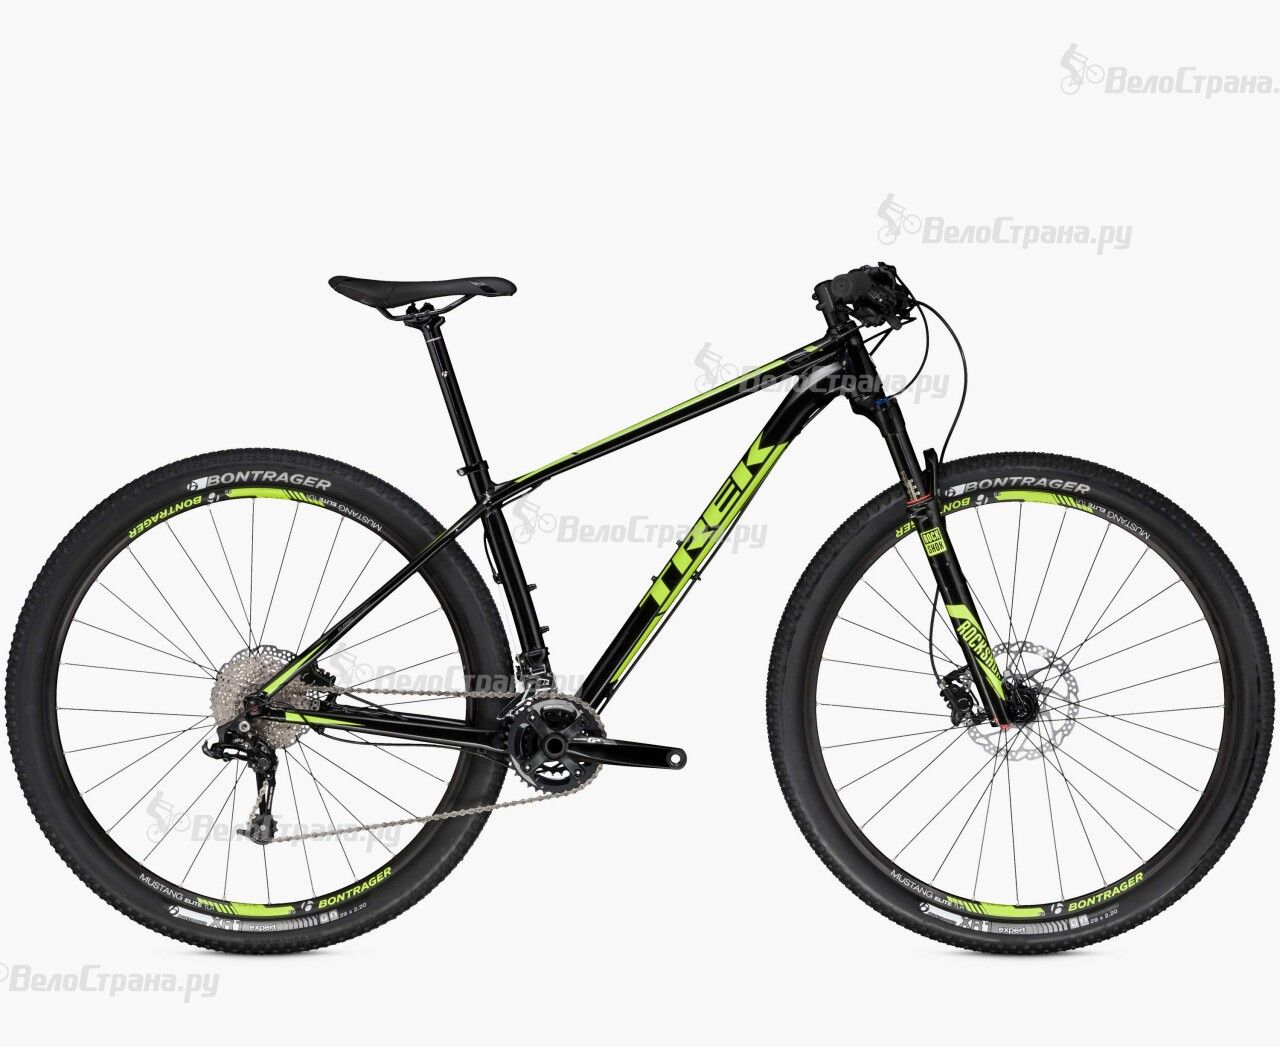 Велосипед Trek Superfly 6 27,5 (2016) 26652 кружка 340мл футбол подар упак lr х48